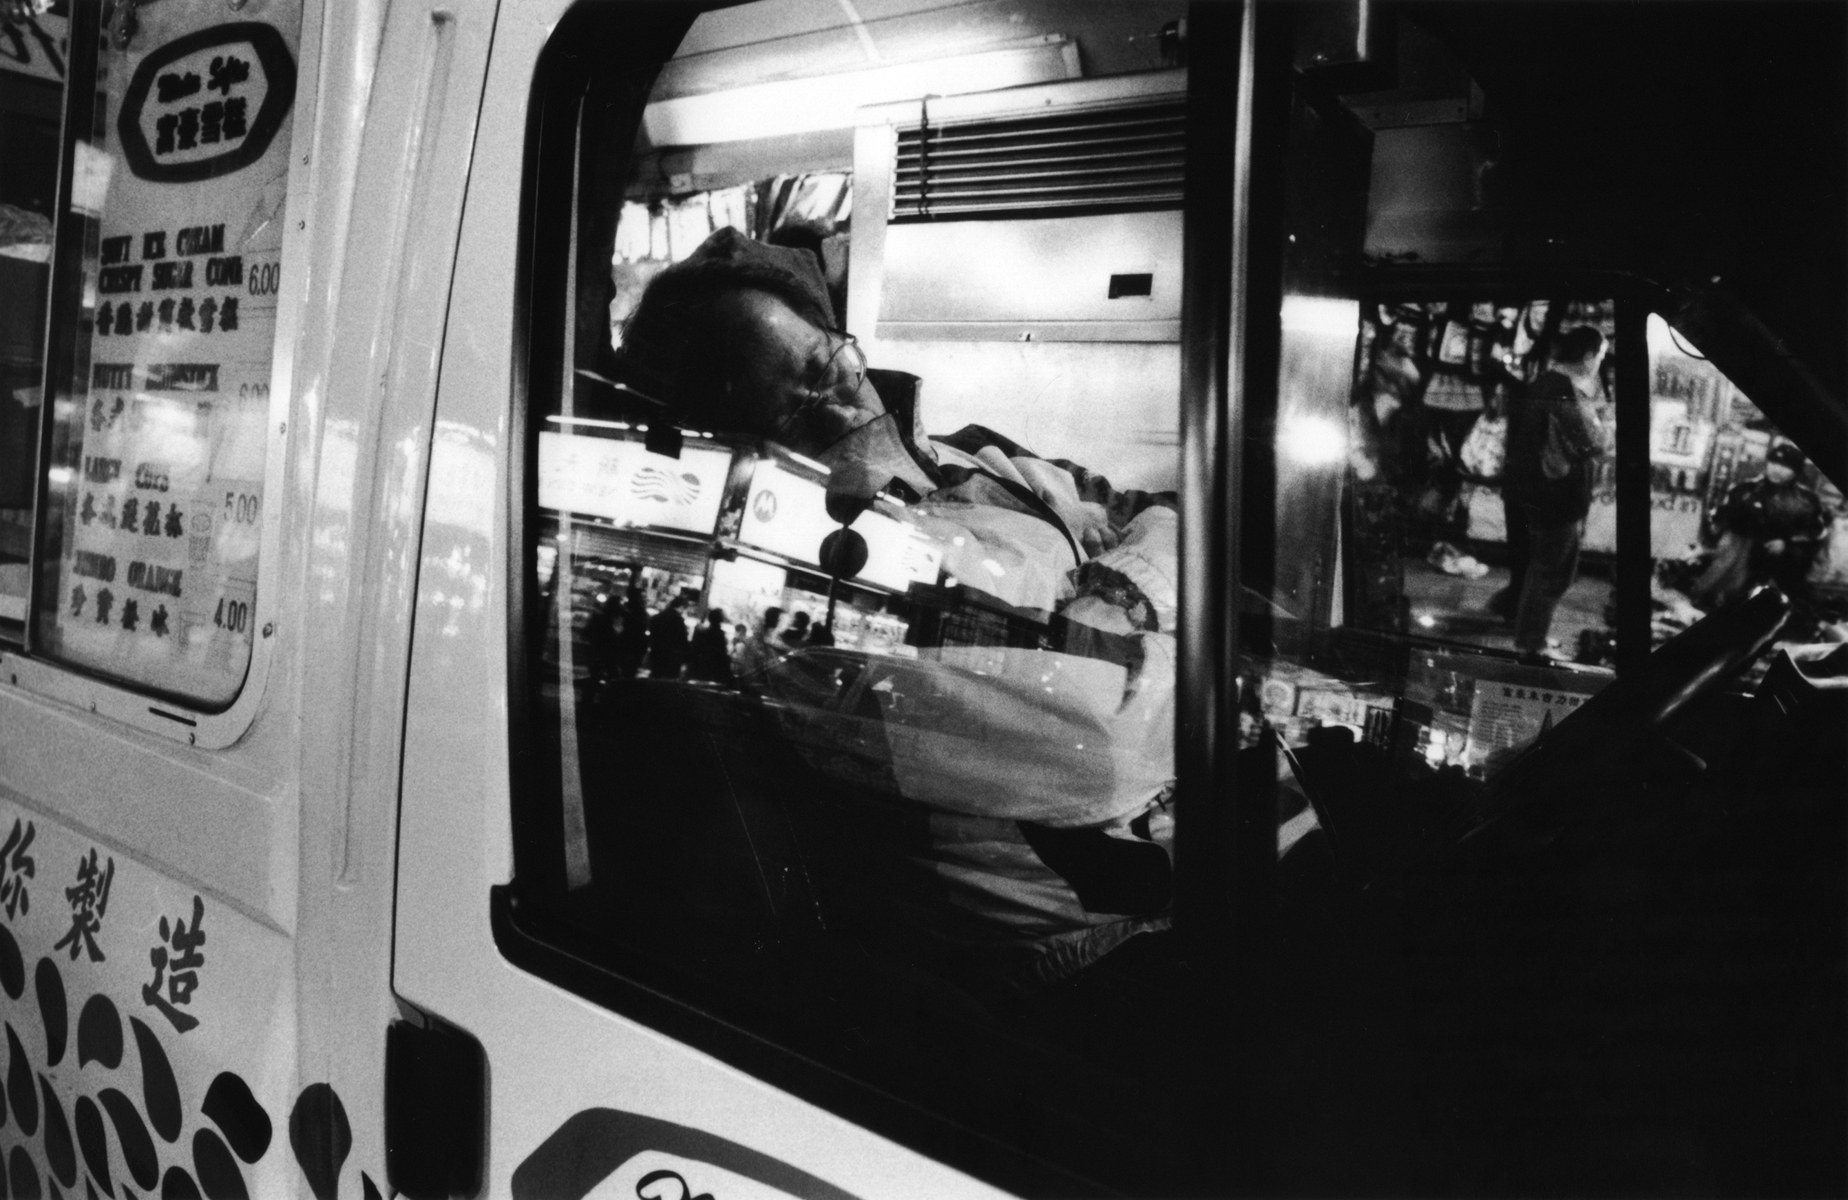 A late night vendor sleeps in his van in Mong Kok, while wating for residents and night market shoppers to knock and buy ice cream.Kowloon Peninsula, Hong Kong.